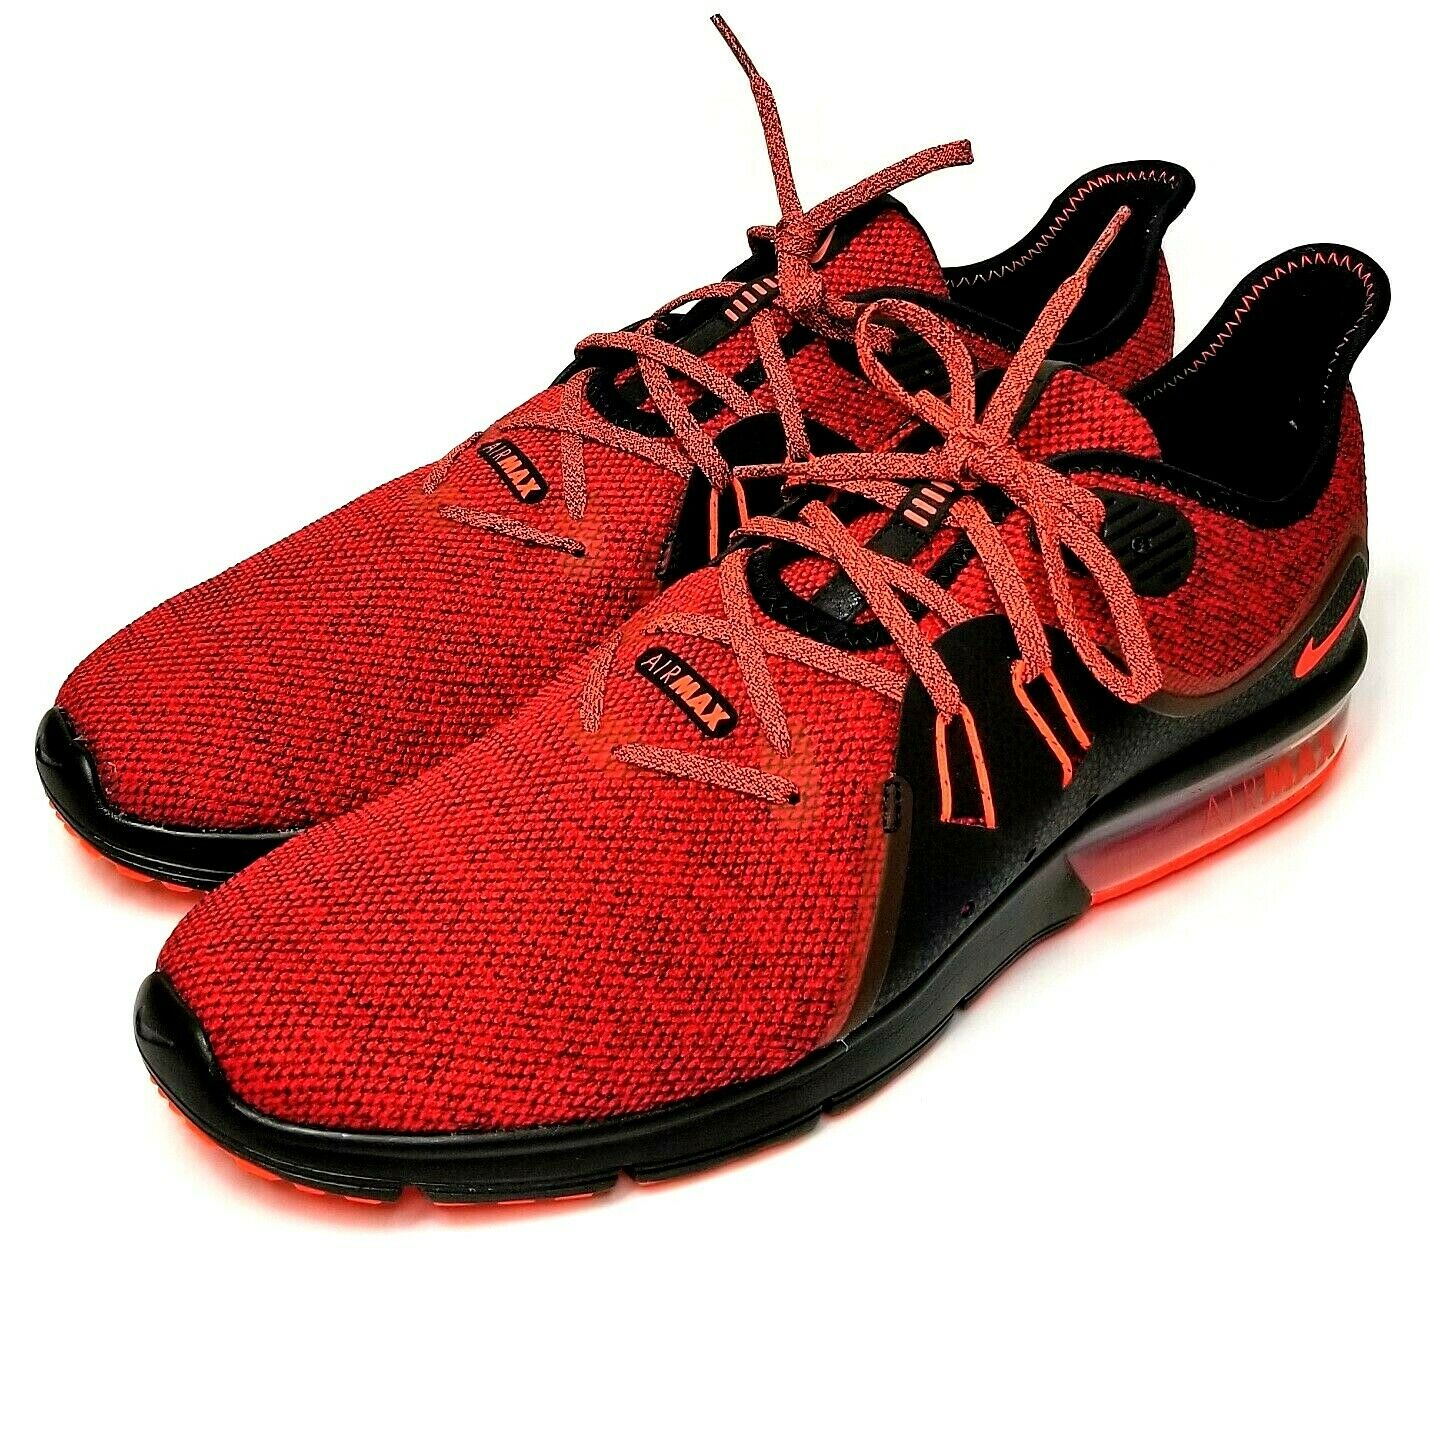 Nike Air Max Sequent 3 Running Athletic shoes 921694-066 Red Black Mens 13 NEW